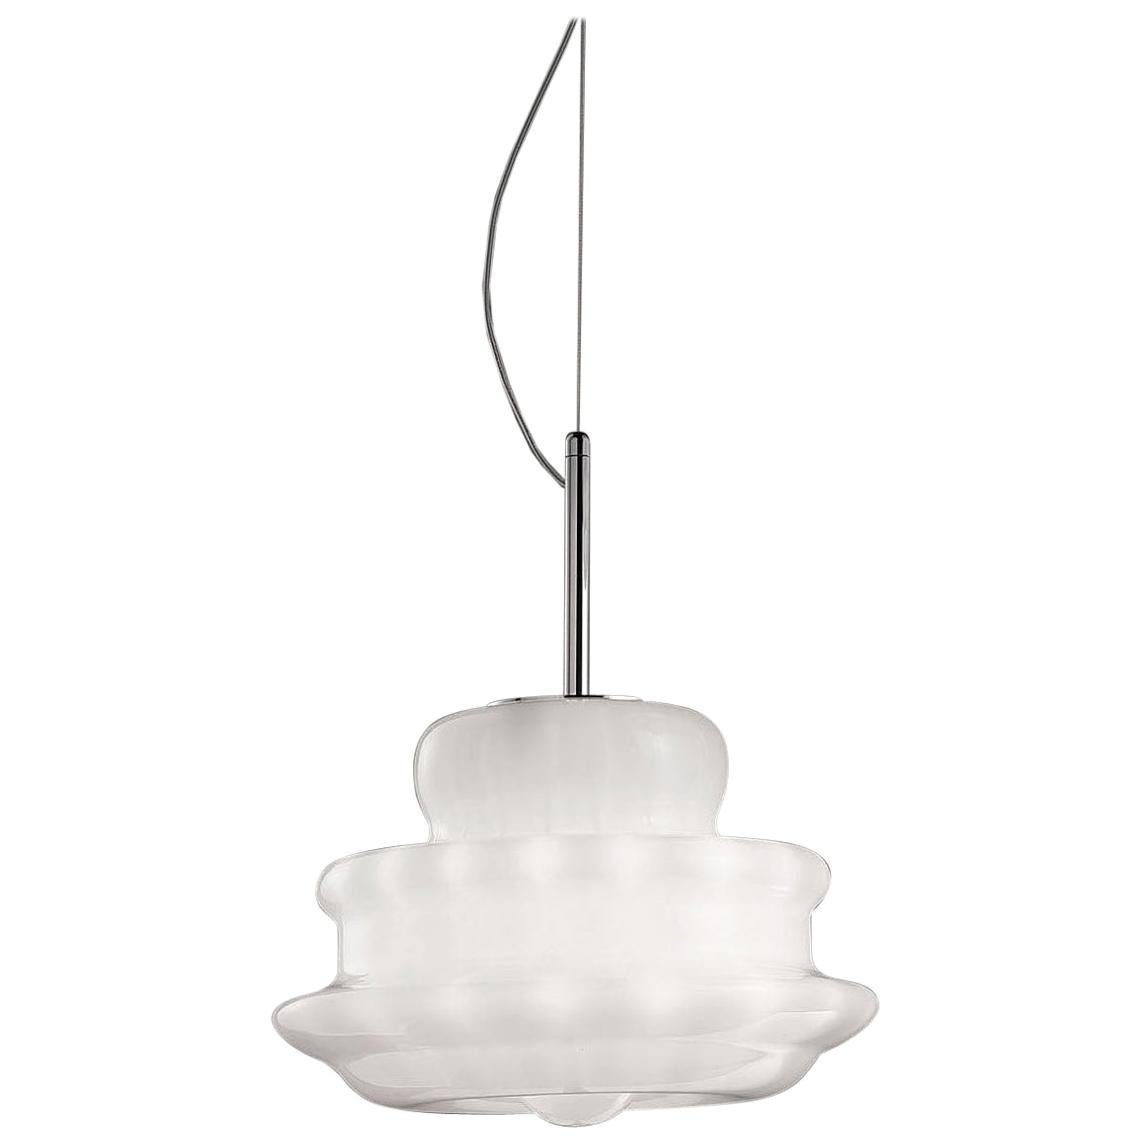 Vistosi Novecento SPP Pendant Light in White Striped by Romani Saccani Architett